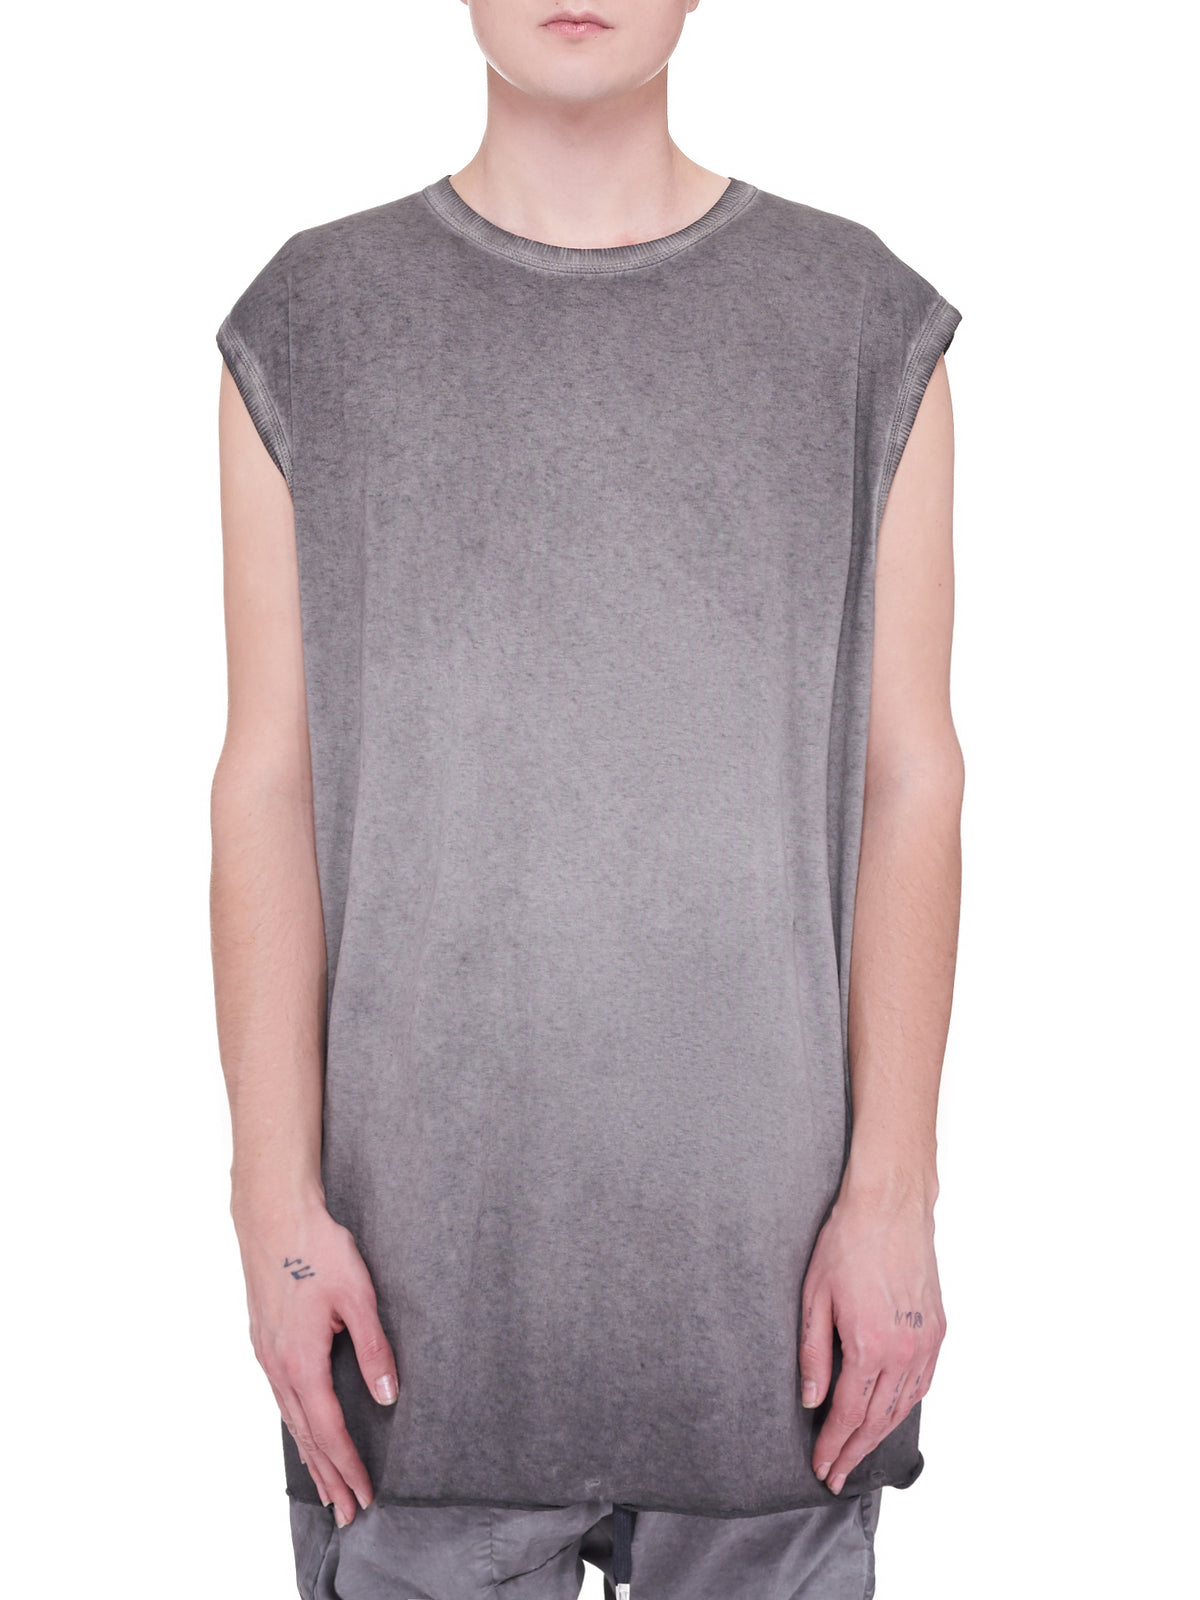 One Piece Tank Top (ONE-PIECE-TANK-F035-DARK-GREY)